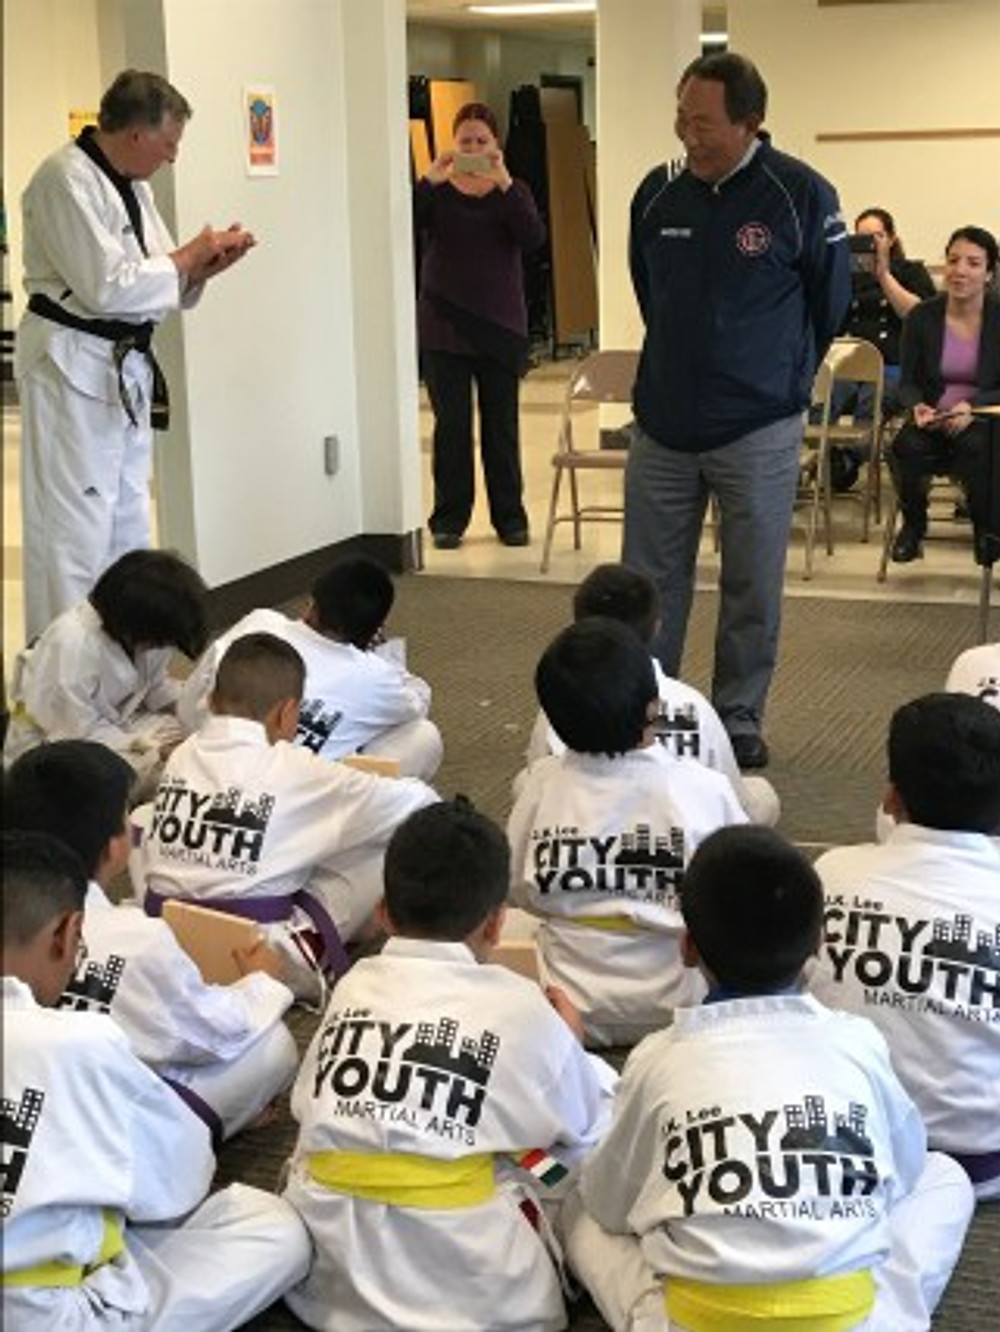 Grand Master J.K. Lee with Milwaukee City Youth Martial Arts students.